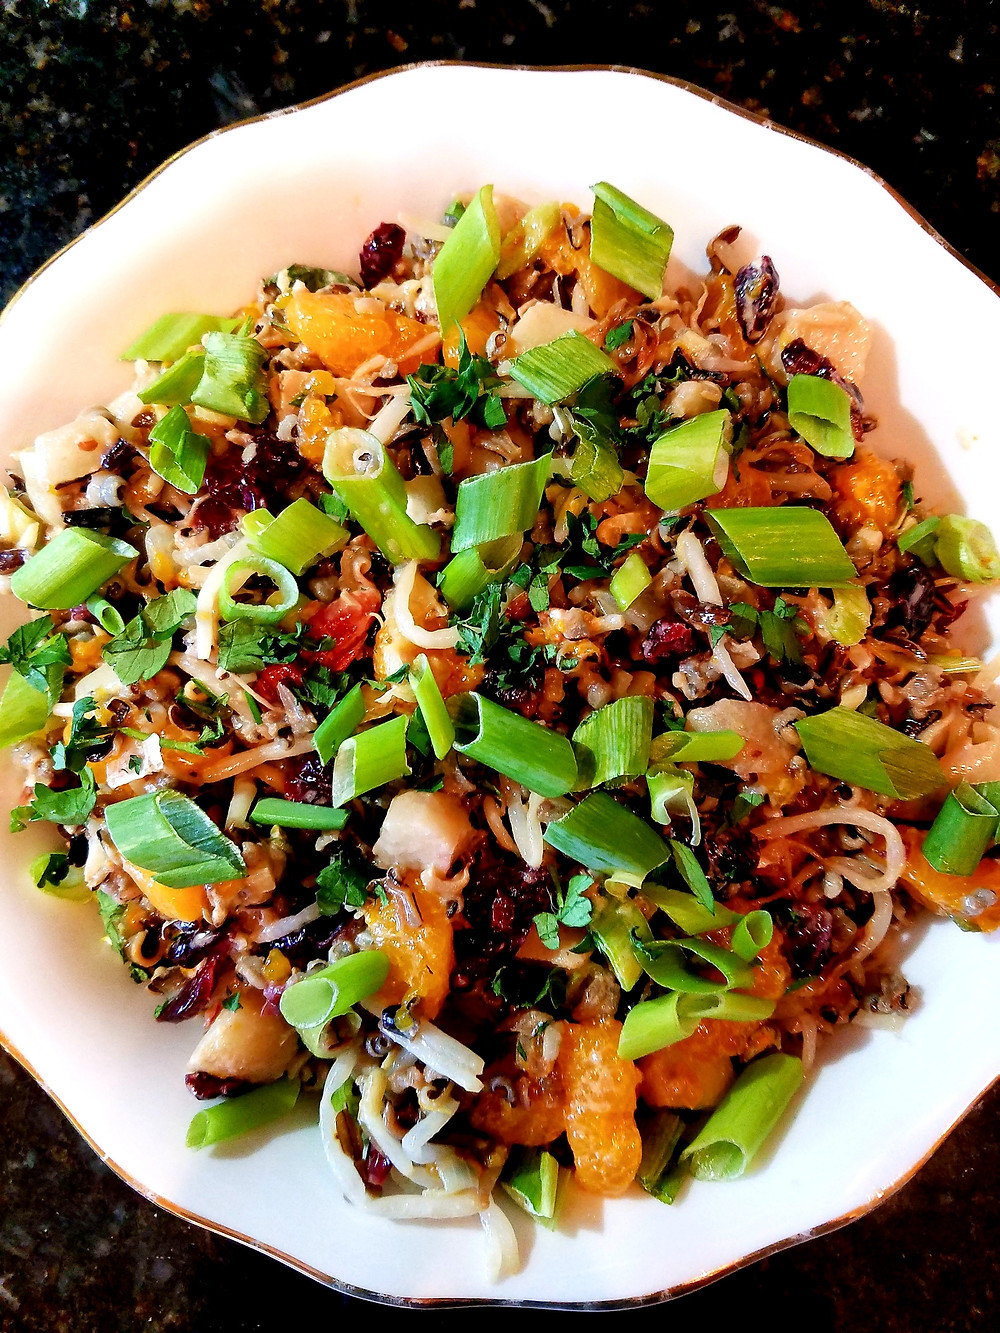 Wild Rice Salad with Cranberries and Pecans (Gluten-free, soy-free, dairy-free)